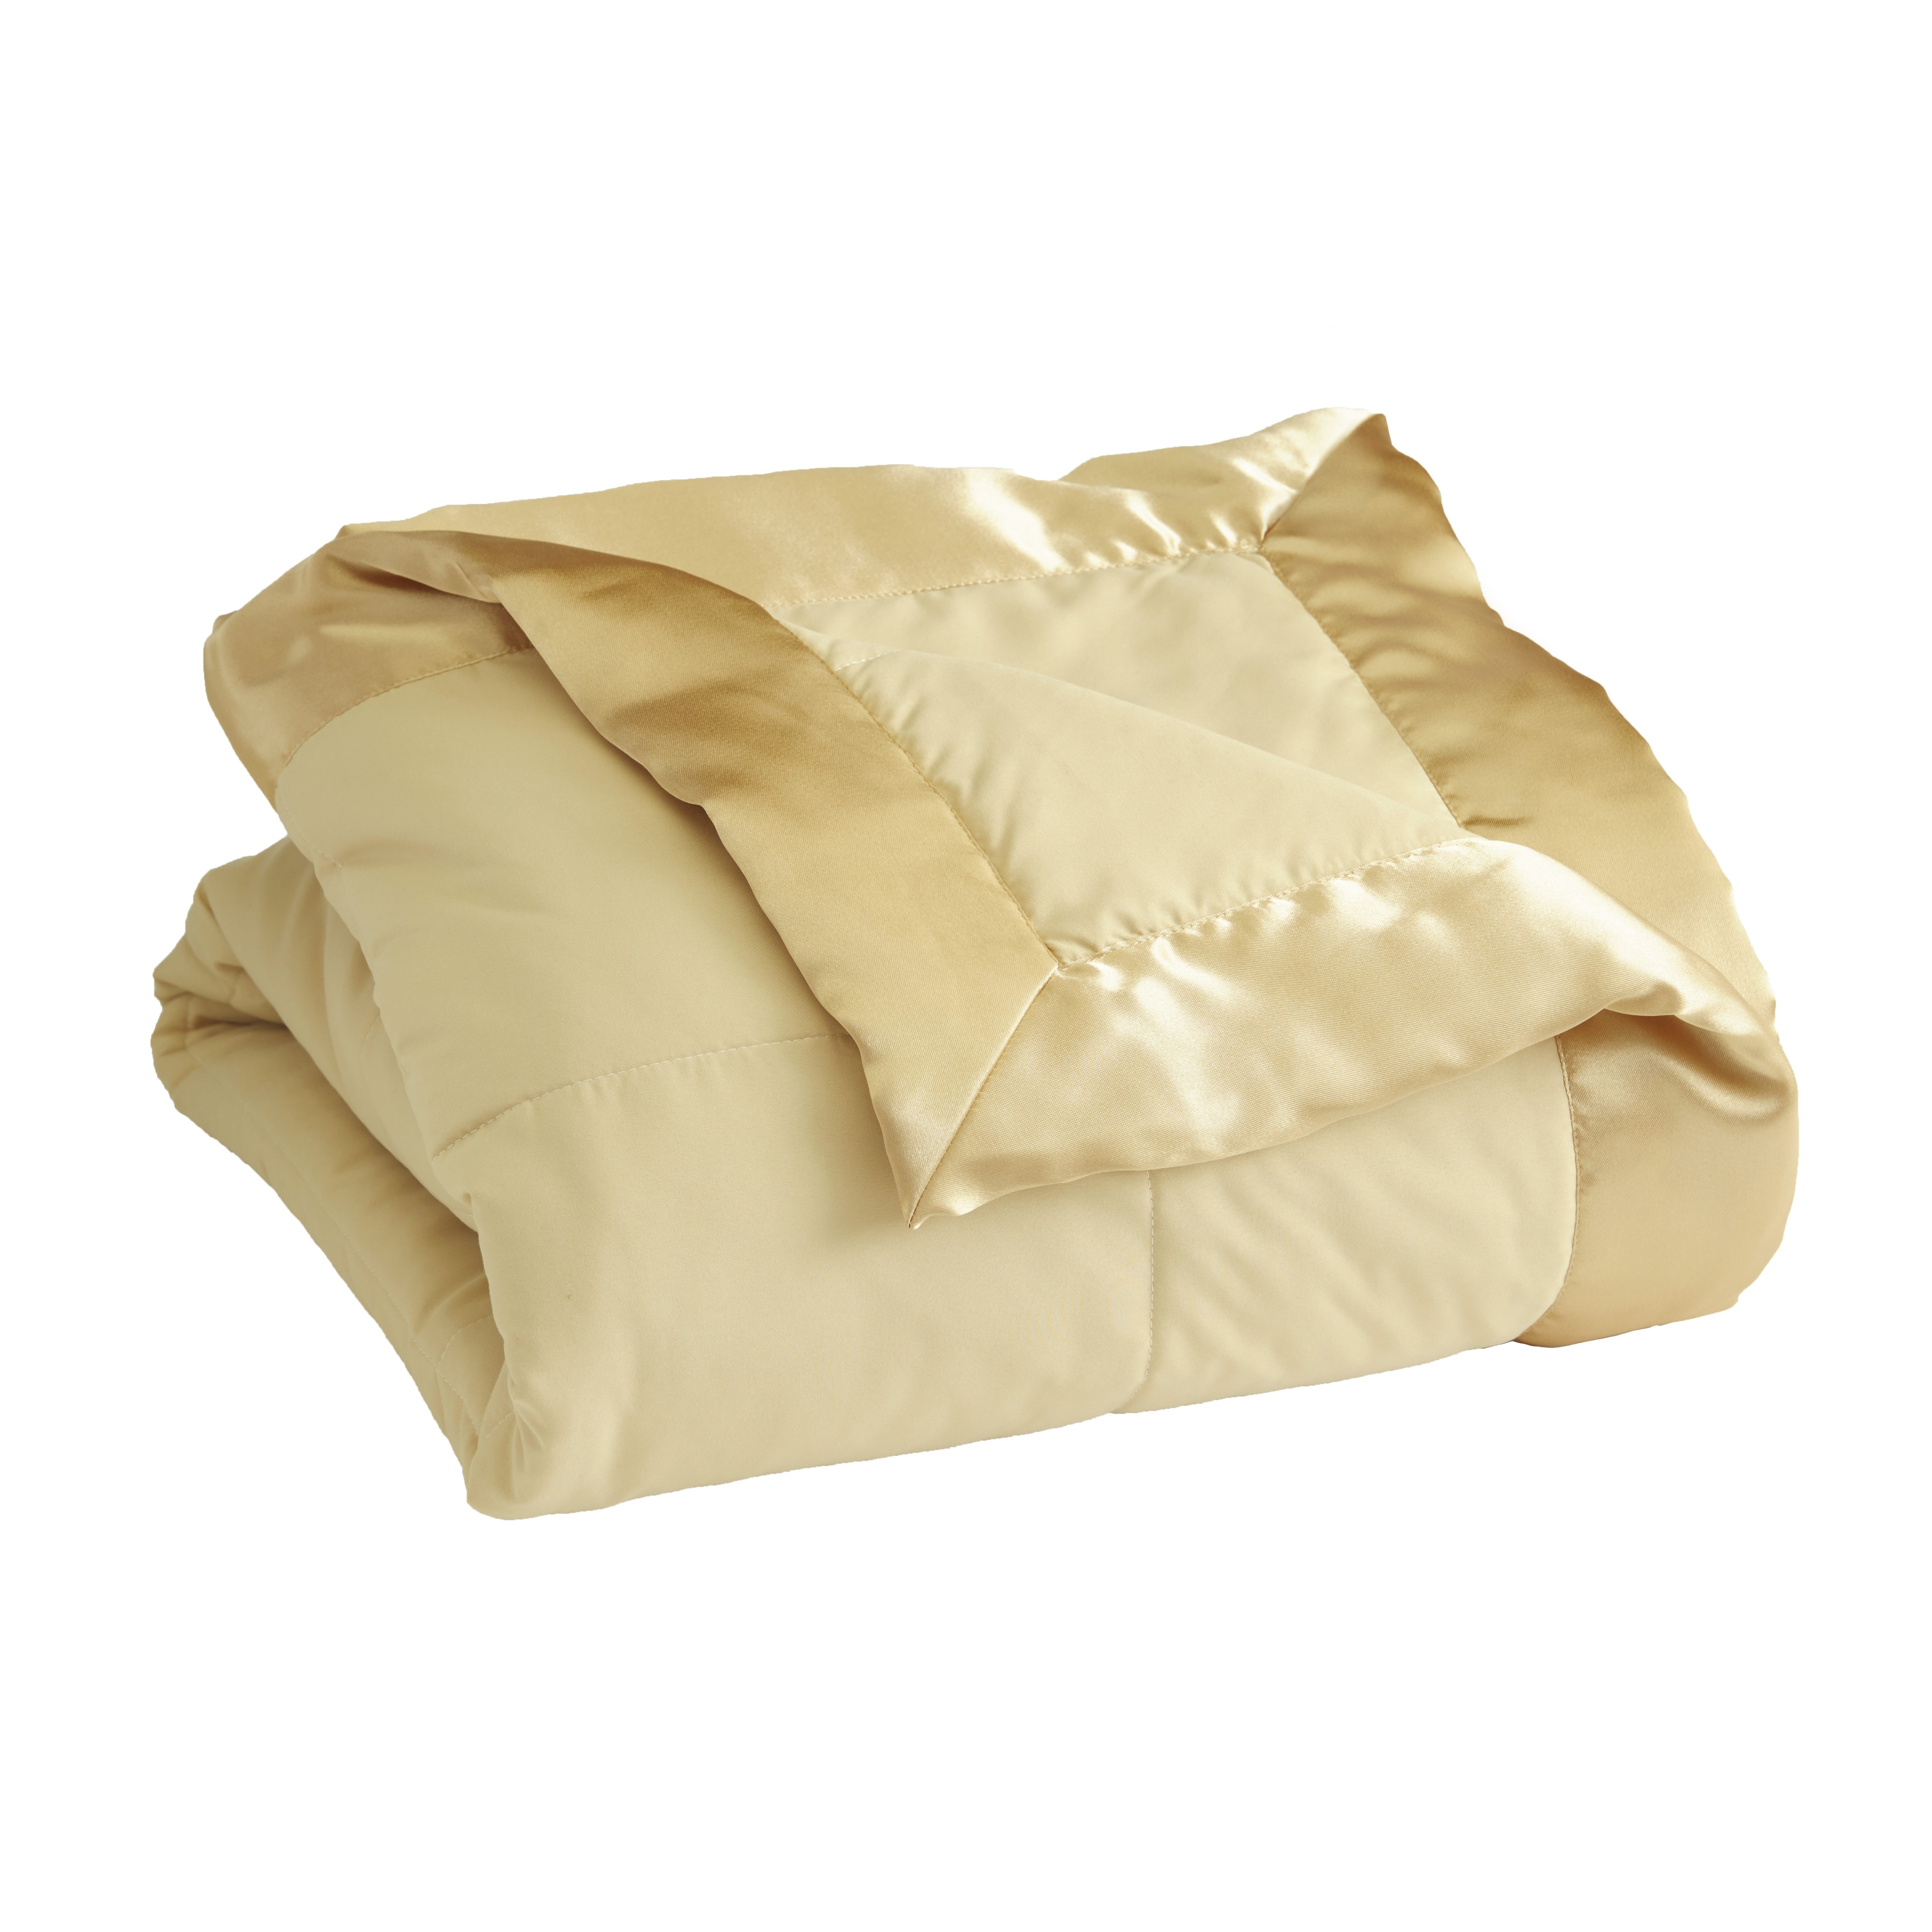 Down-Alternative Bed Blanket With Satin Binding Edges